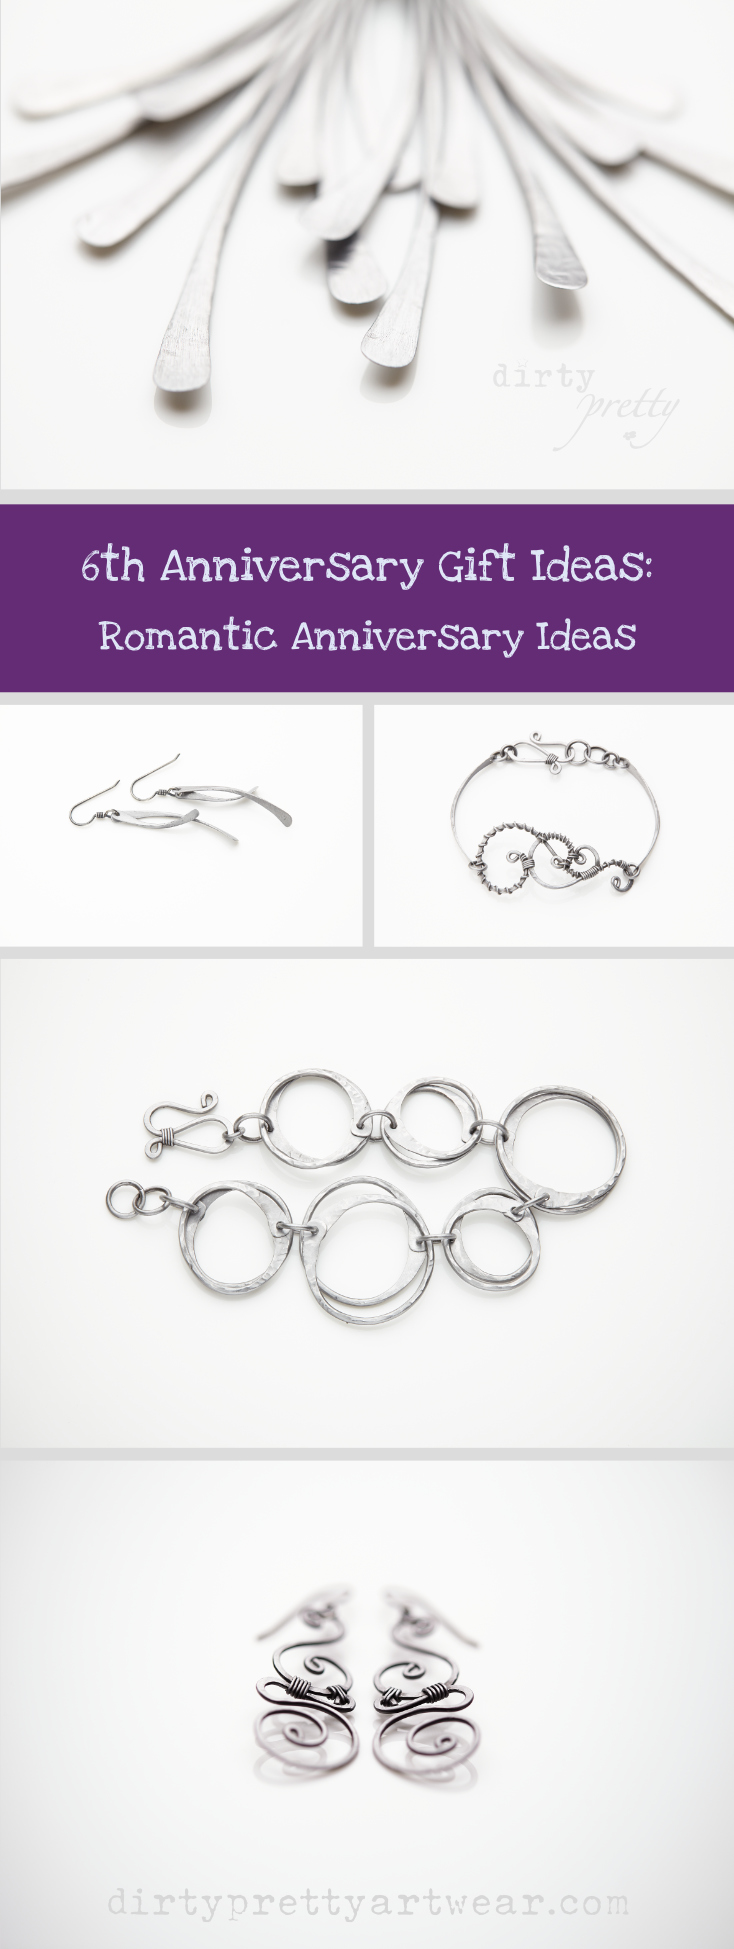 6th Anniversary Gift Ideas: romantic anniversary ideas for your 6th ...